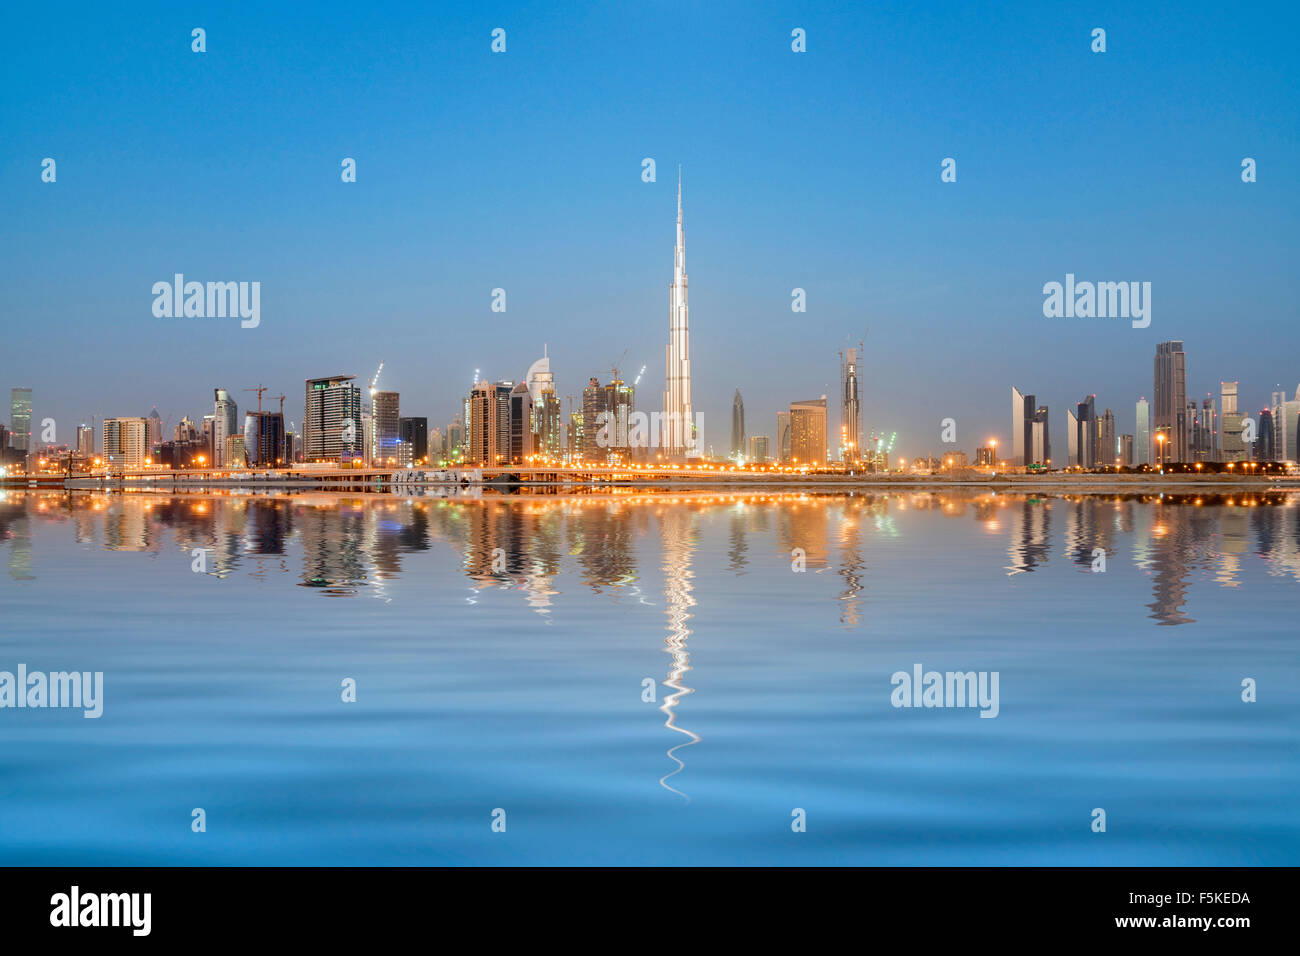 Skyline of towers reflected in the Creek at dawn in Business Bay  in Dubai United Arab Emirates - Stock Image